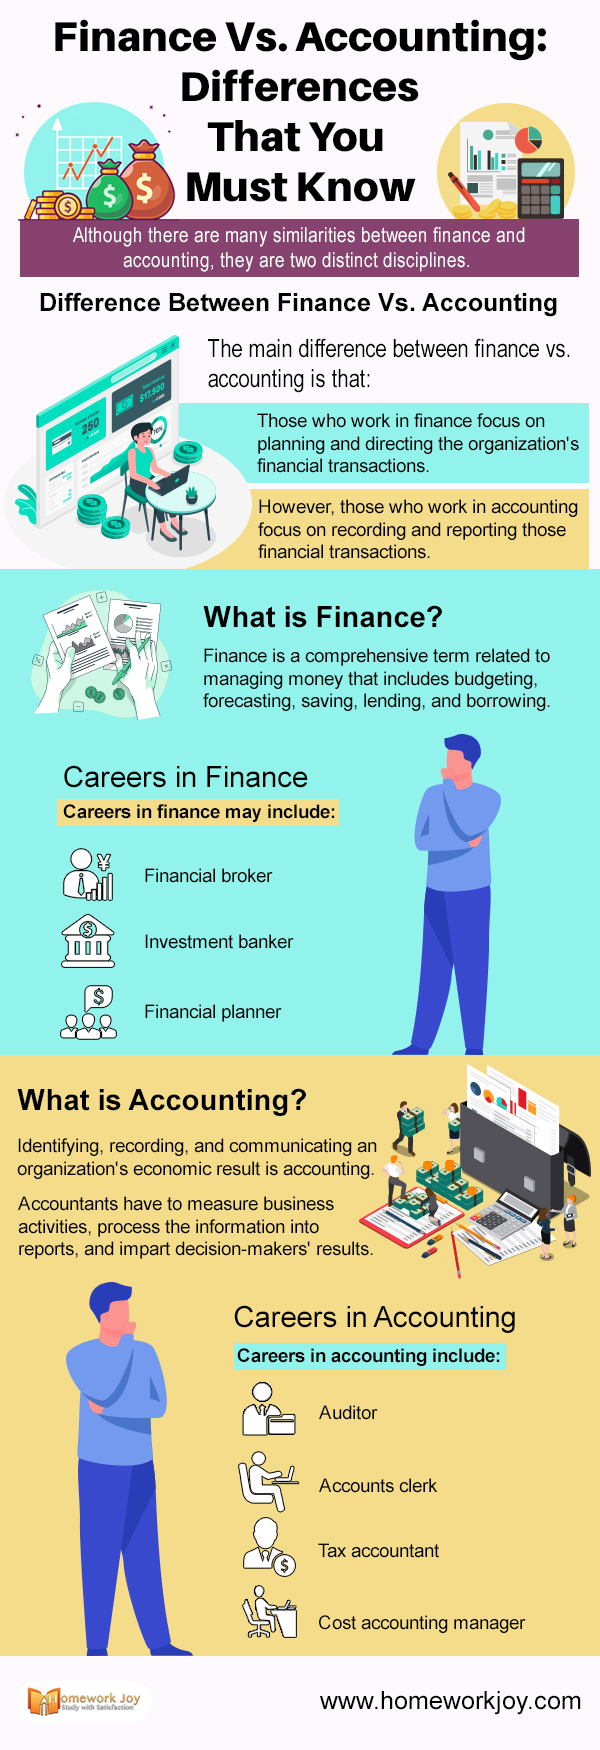 Finance Vs. Accounting Differences That You Must Know